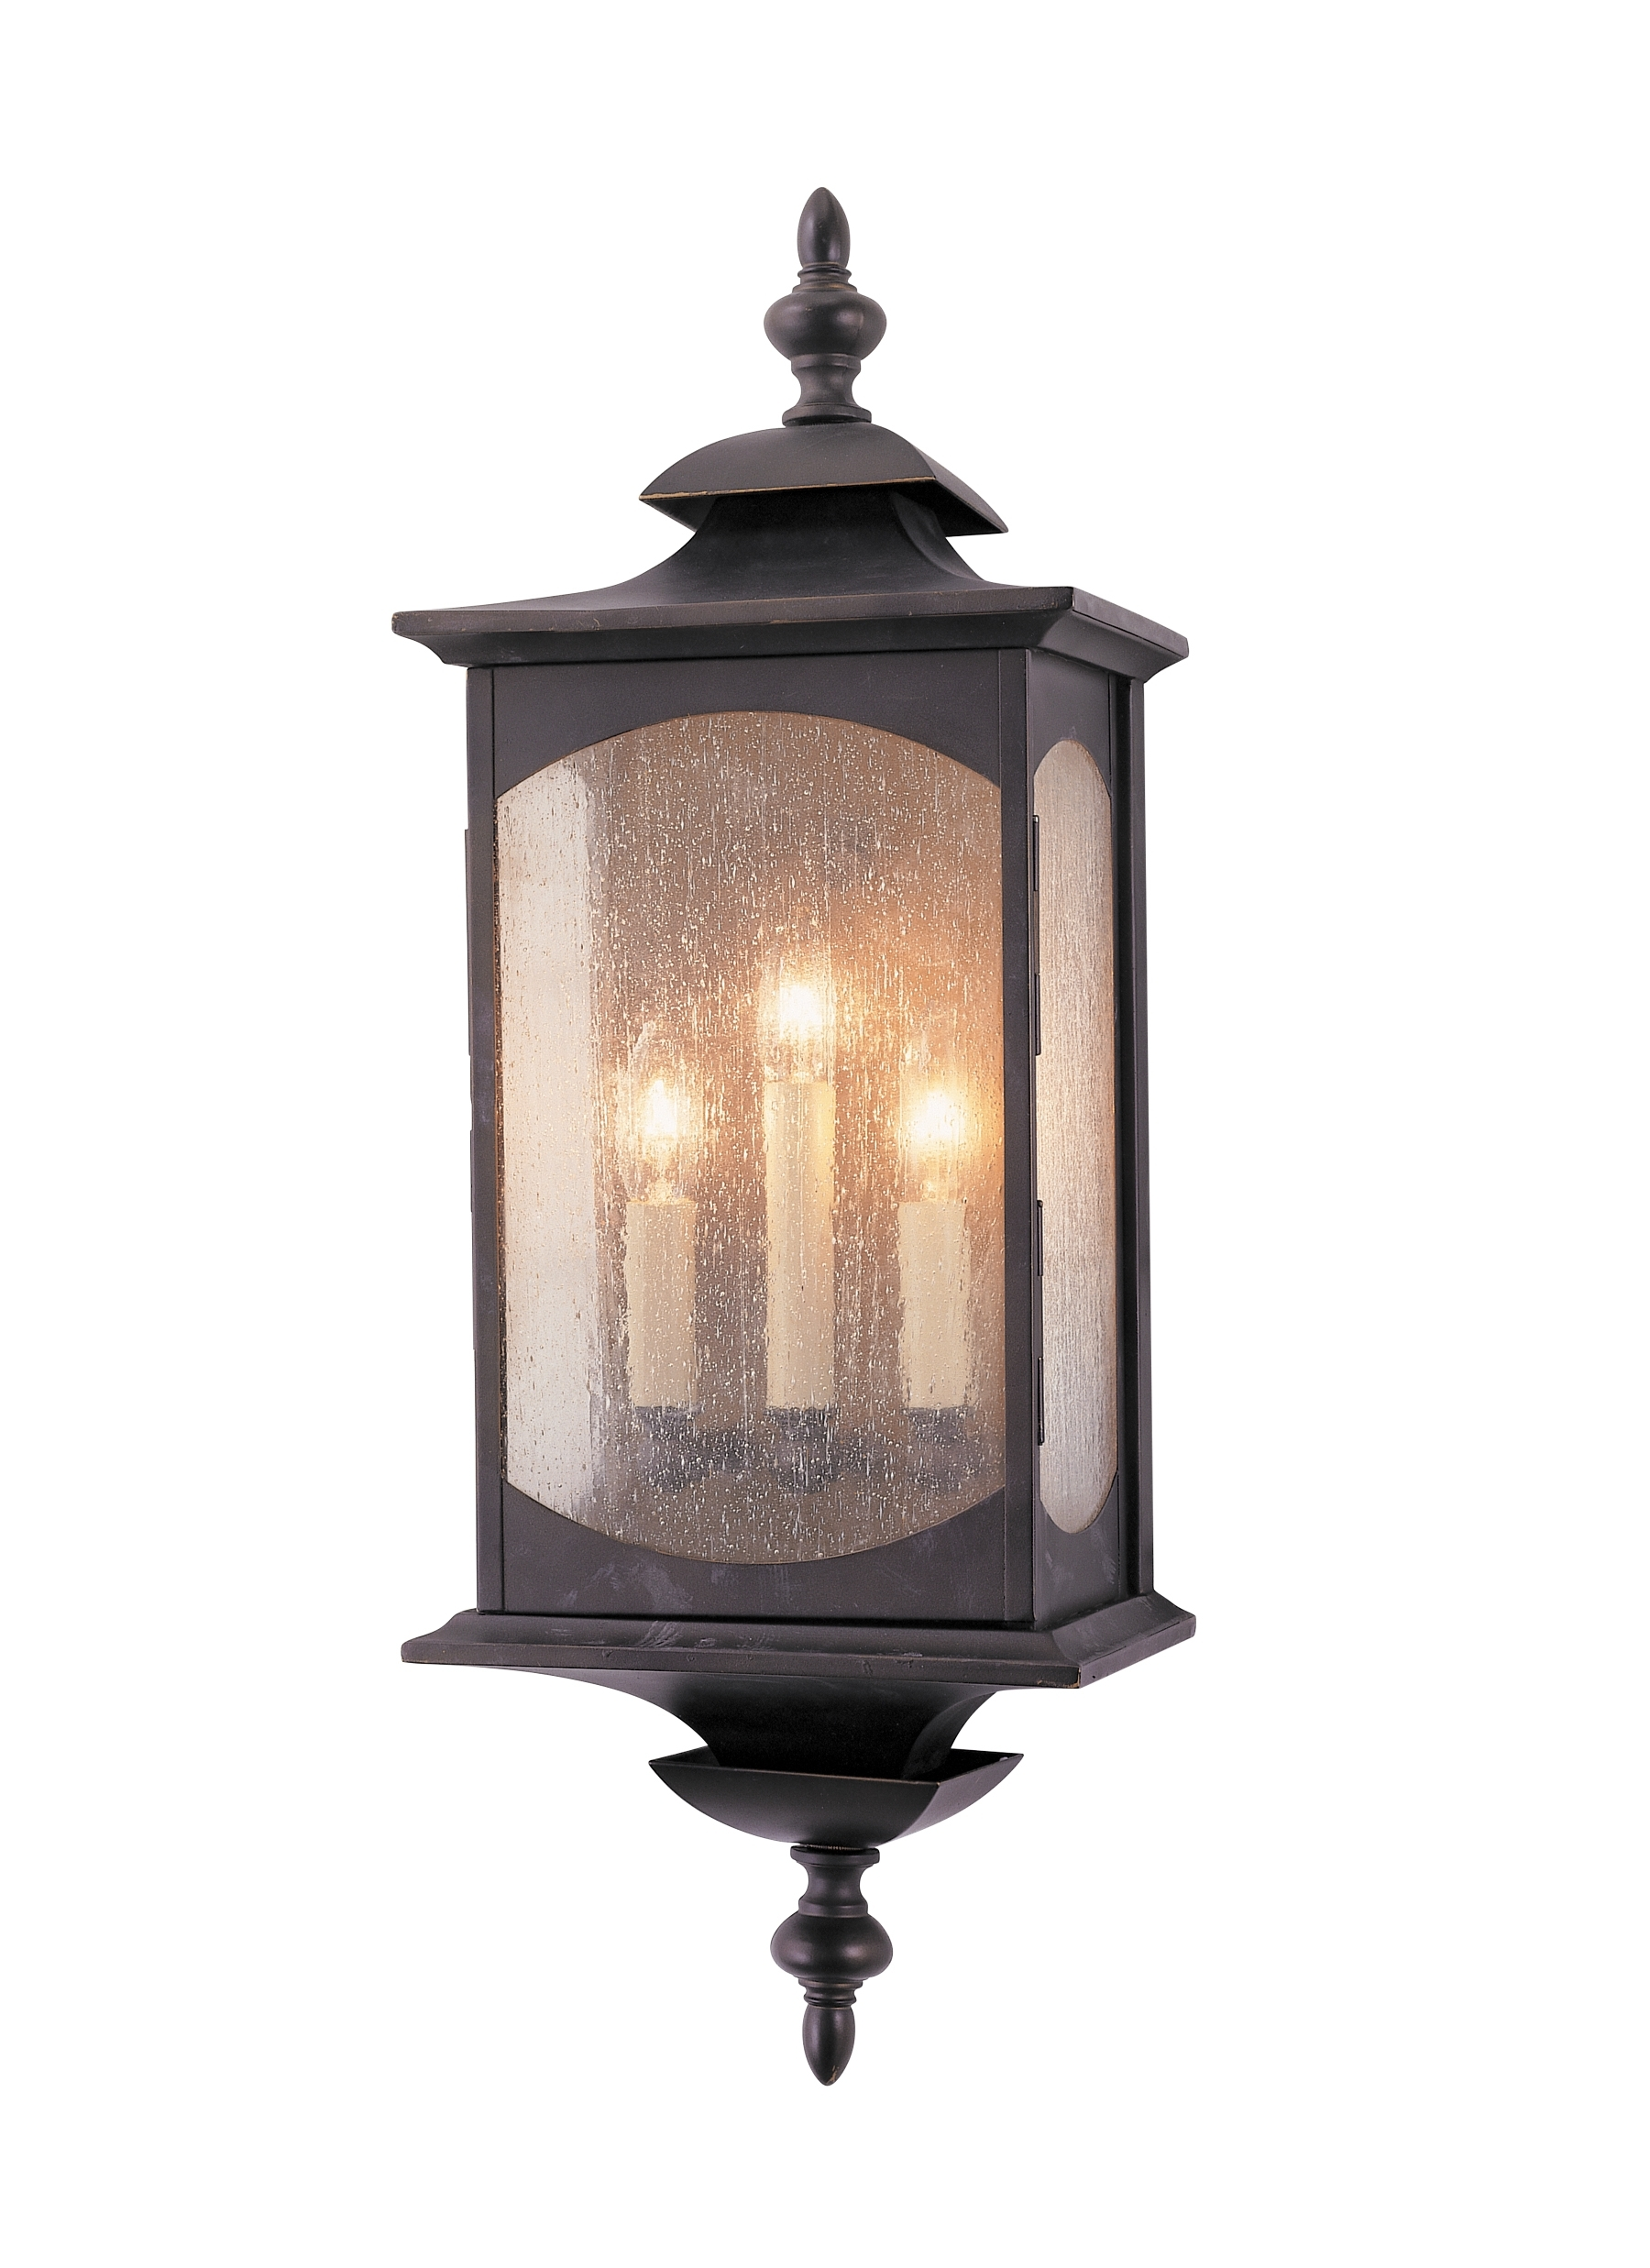 Ol2602Orb,3 – Light Wall Lantern,oil Rubbed Bronze Intended For Outdoor Oil Lanterns For Patio (View 9 of 20)